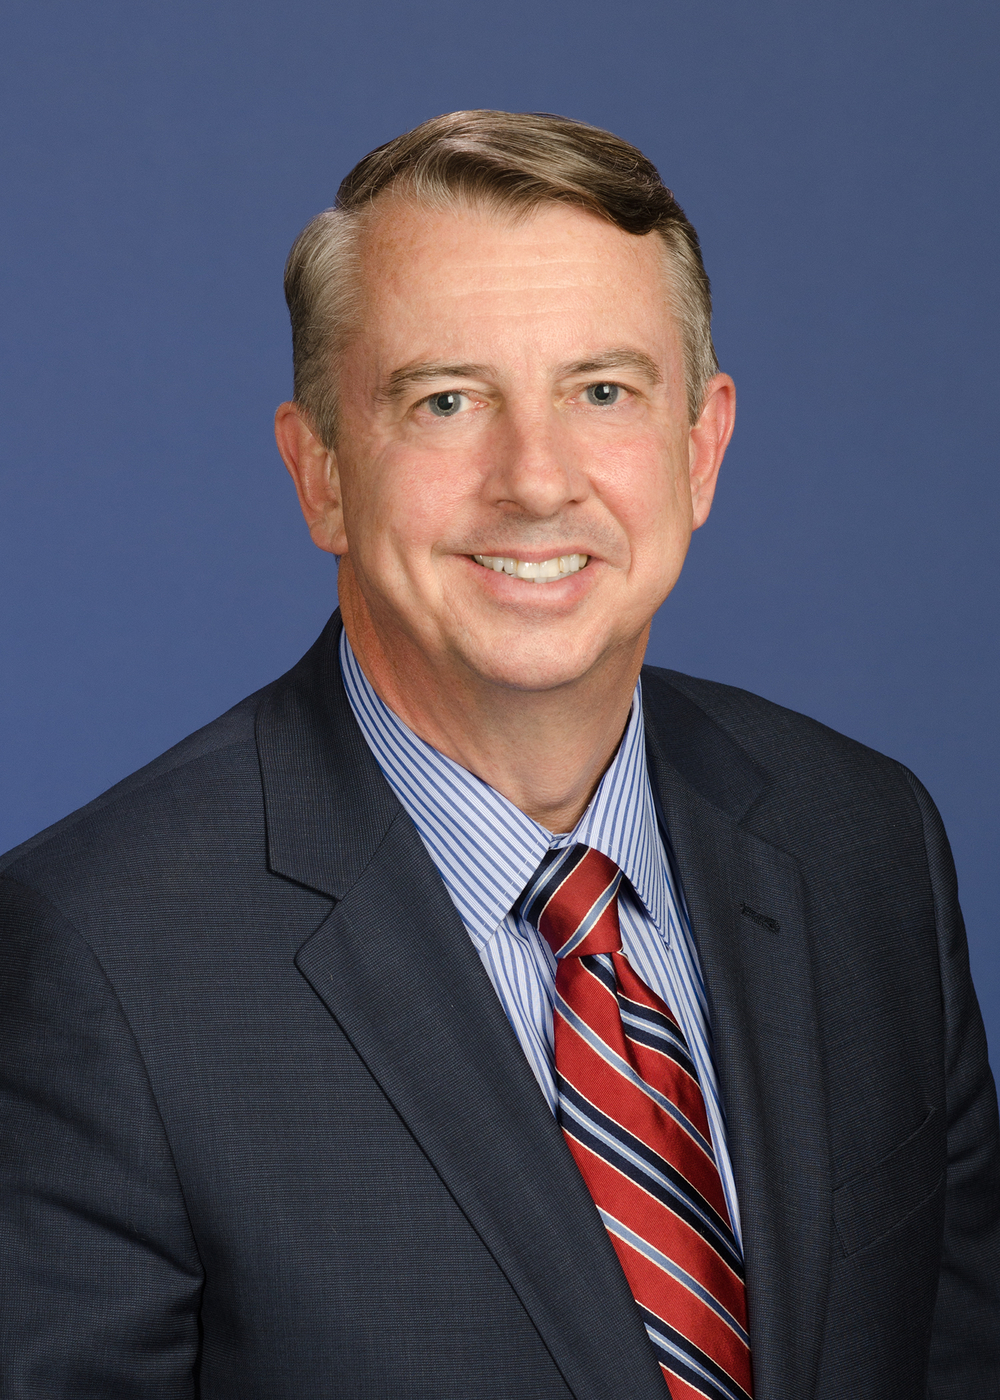 Mr. Ed Gillespie